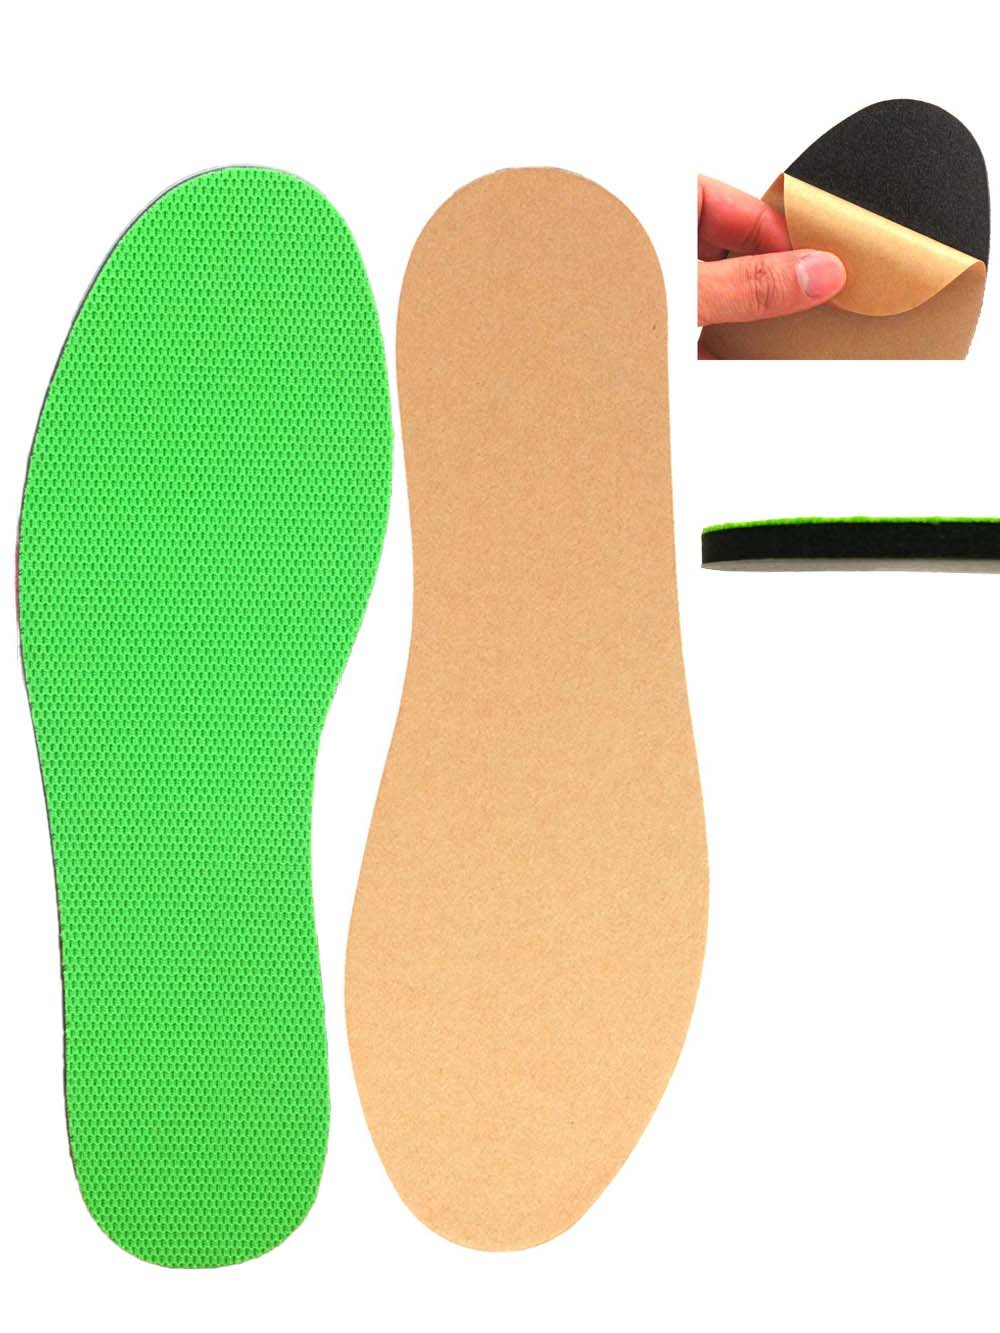 Adhesive Sockless Shoes Insoles that Absorb Sweat and always Stay in place for Sandals, High heels, Mules, Flip Flops (Women's 9.5-10, Men's 8-8.5(255mm Green))